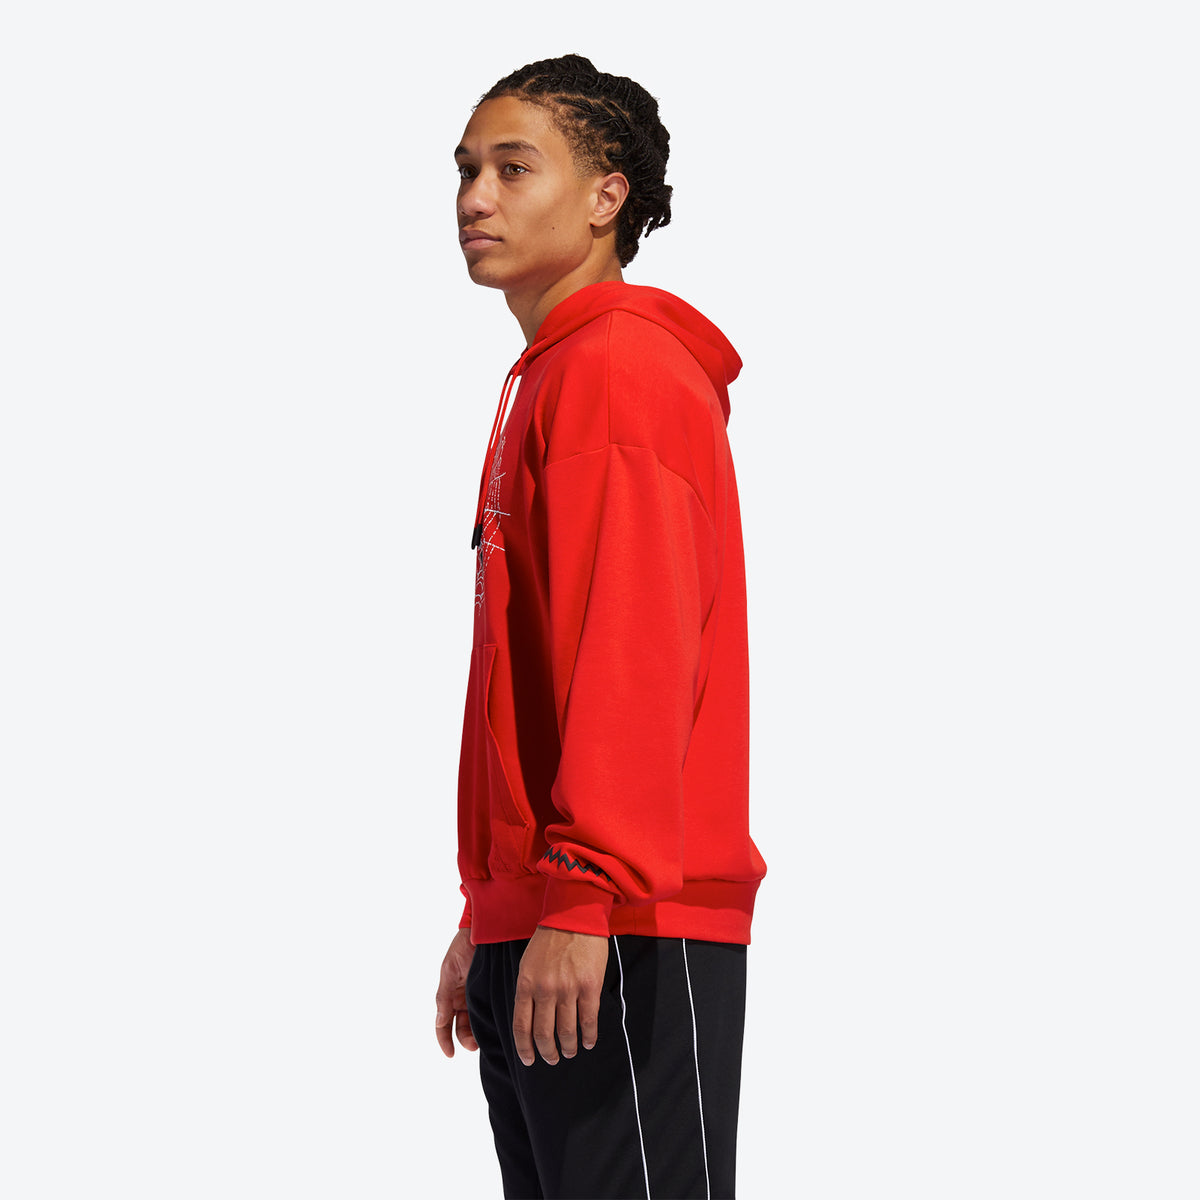 Adidas D.O.N. Issue #2 Pullover Hoodie - Red